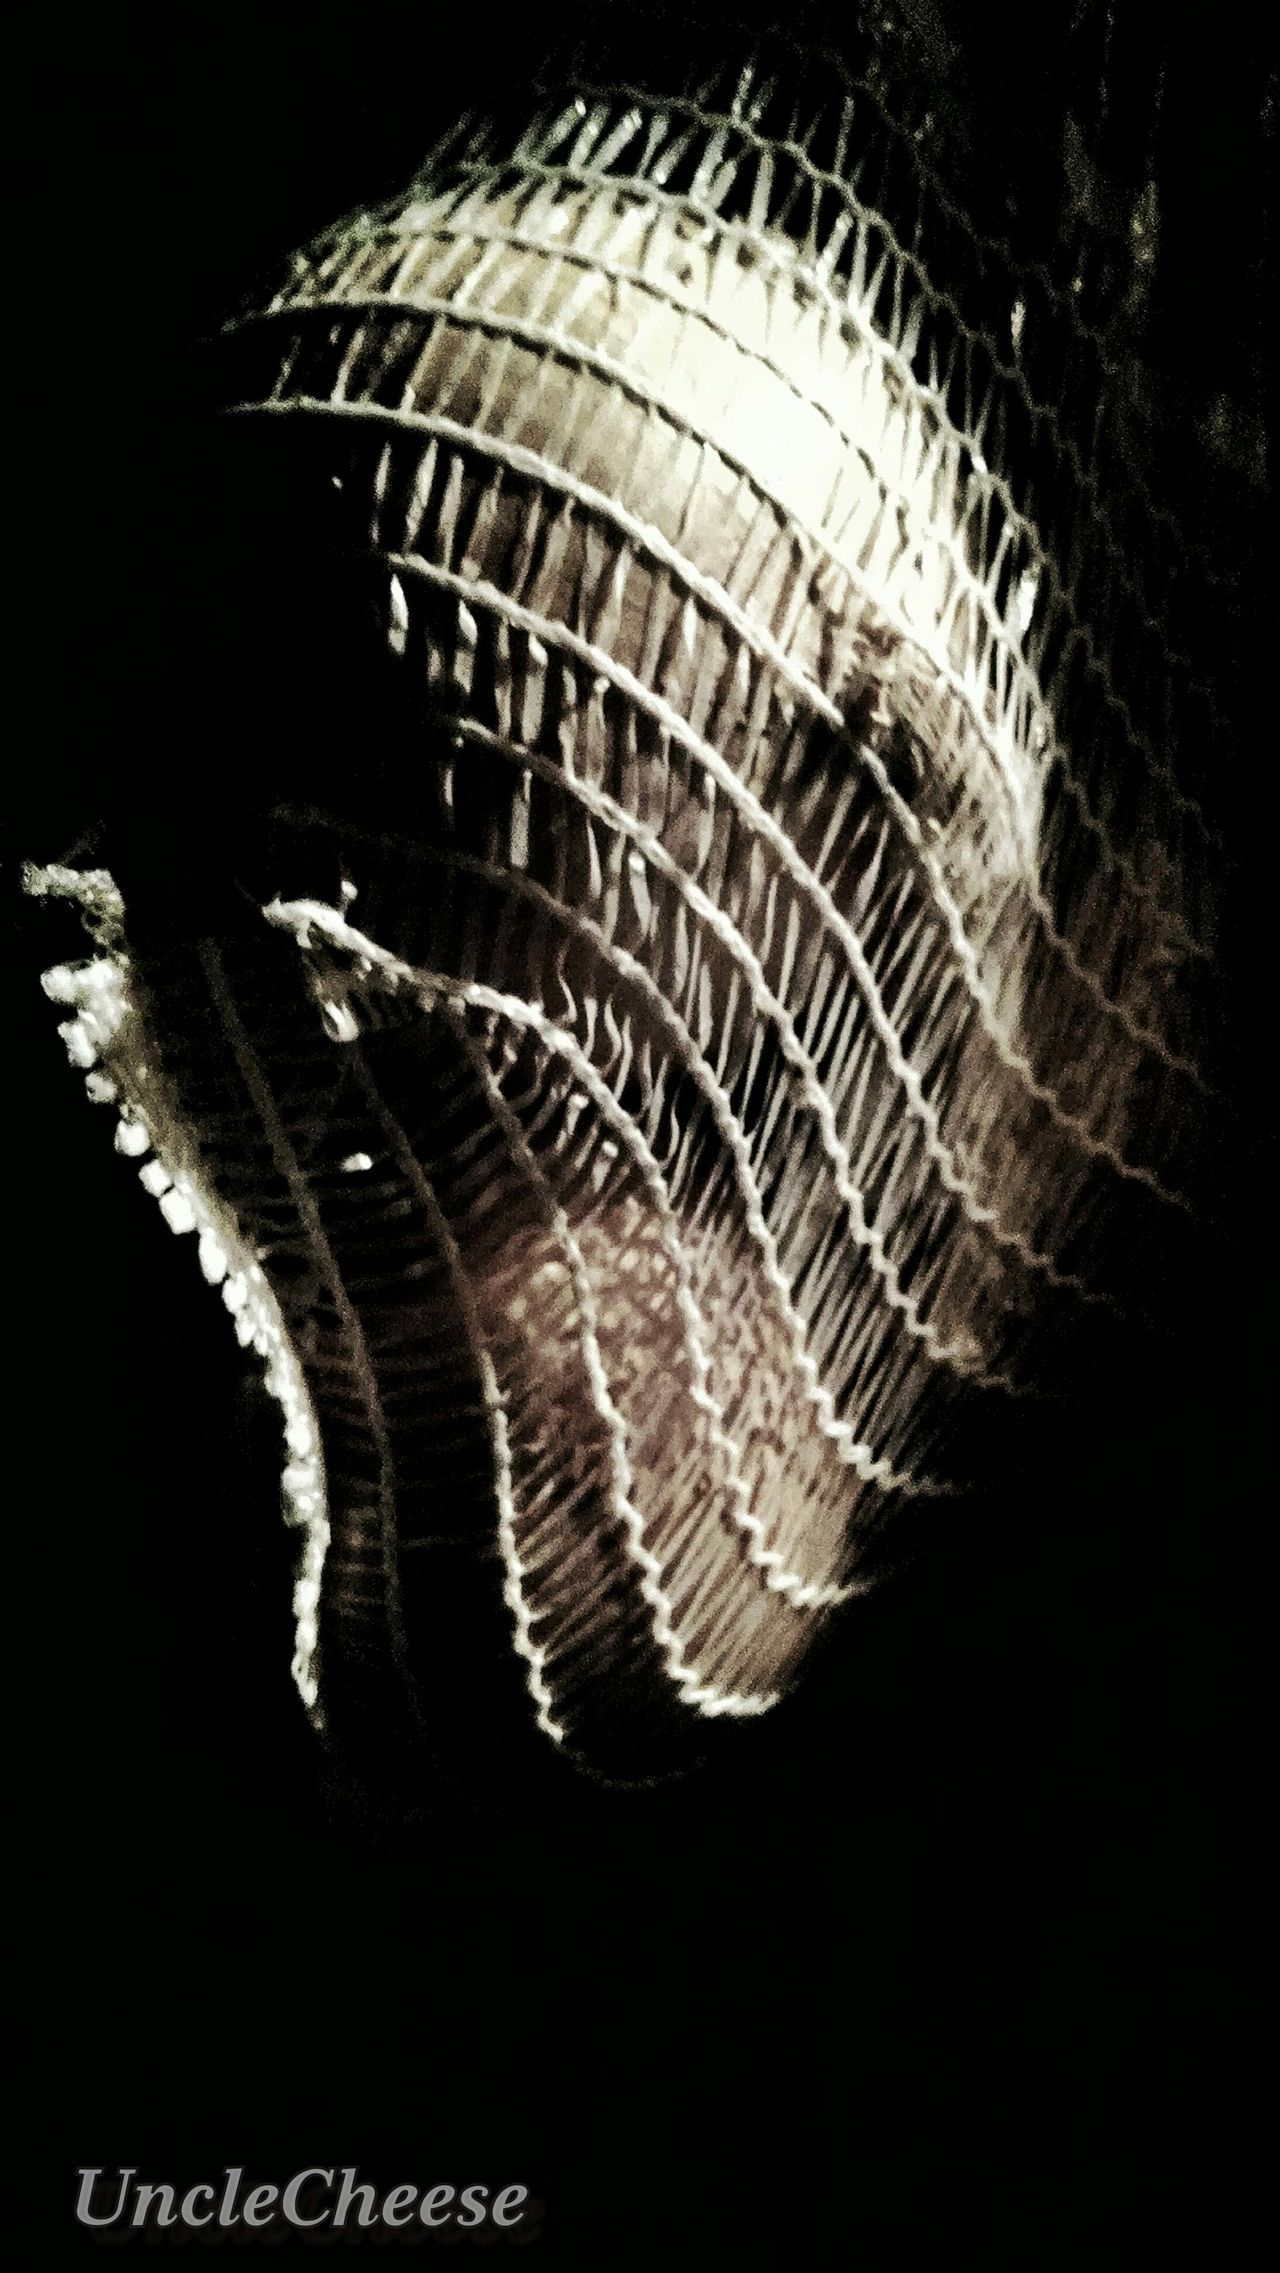 Sensualart Light And Shadow Fishnet Onions Lighting Shadows Better Look Twice Beauty In Ordinary Things Anatomyhumor StreamzooVille Streamzoofamily Streamzoo TheVilleAtEyeem From My Point Of View No People From Where I Stand